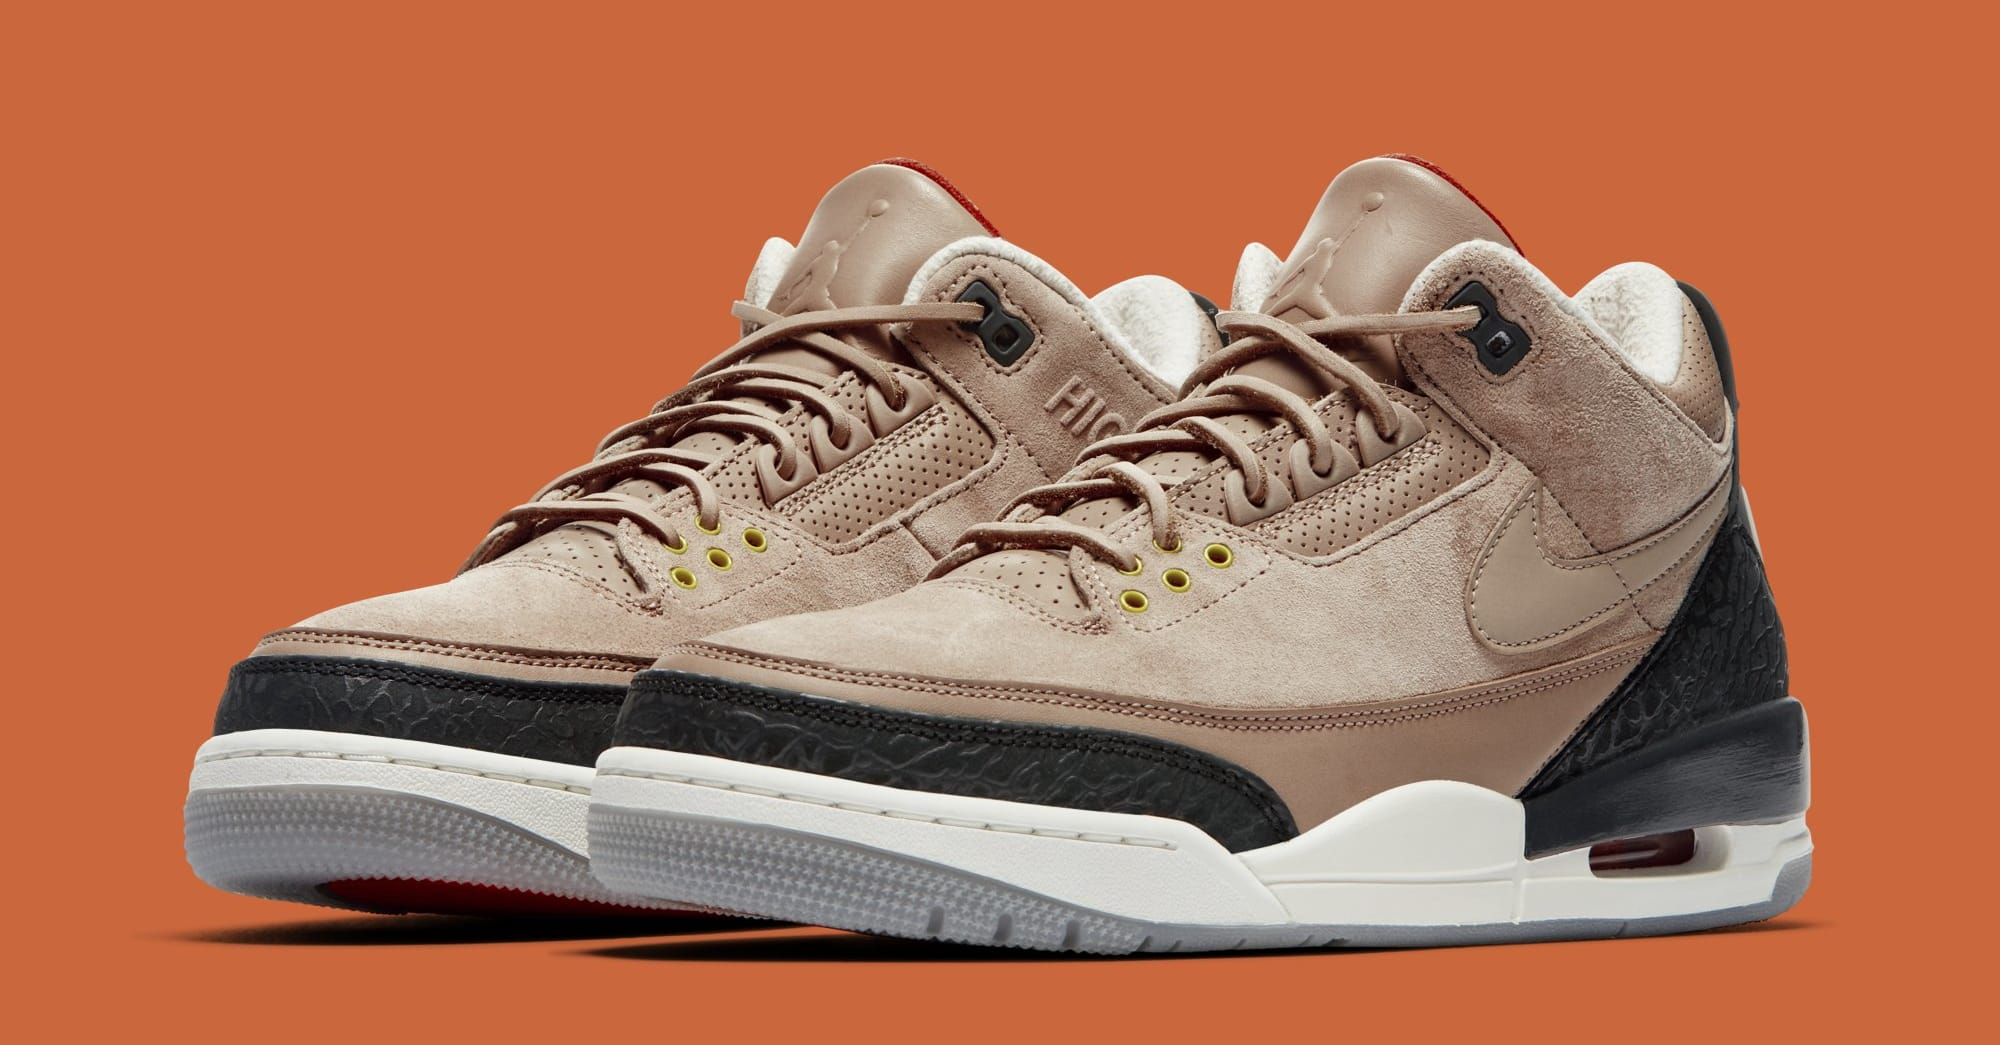 49a9378f48b8 ... cheap air jordan 3 iii. follow this model. image via nike 18da0 c45f4